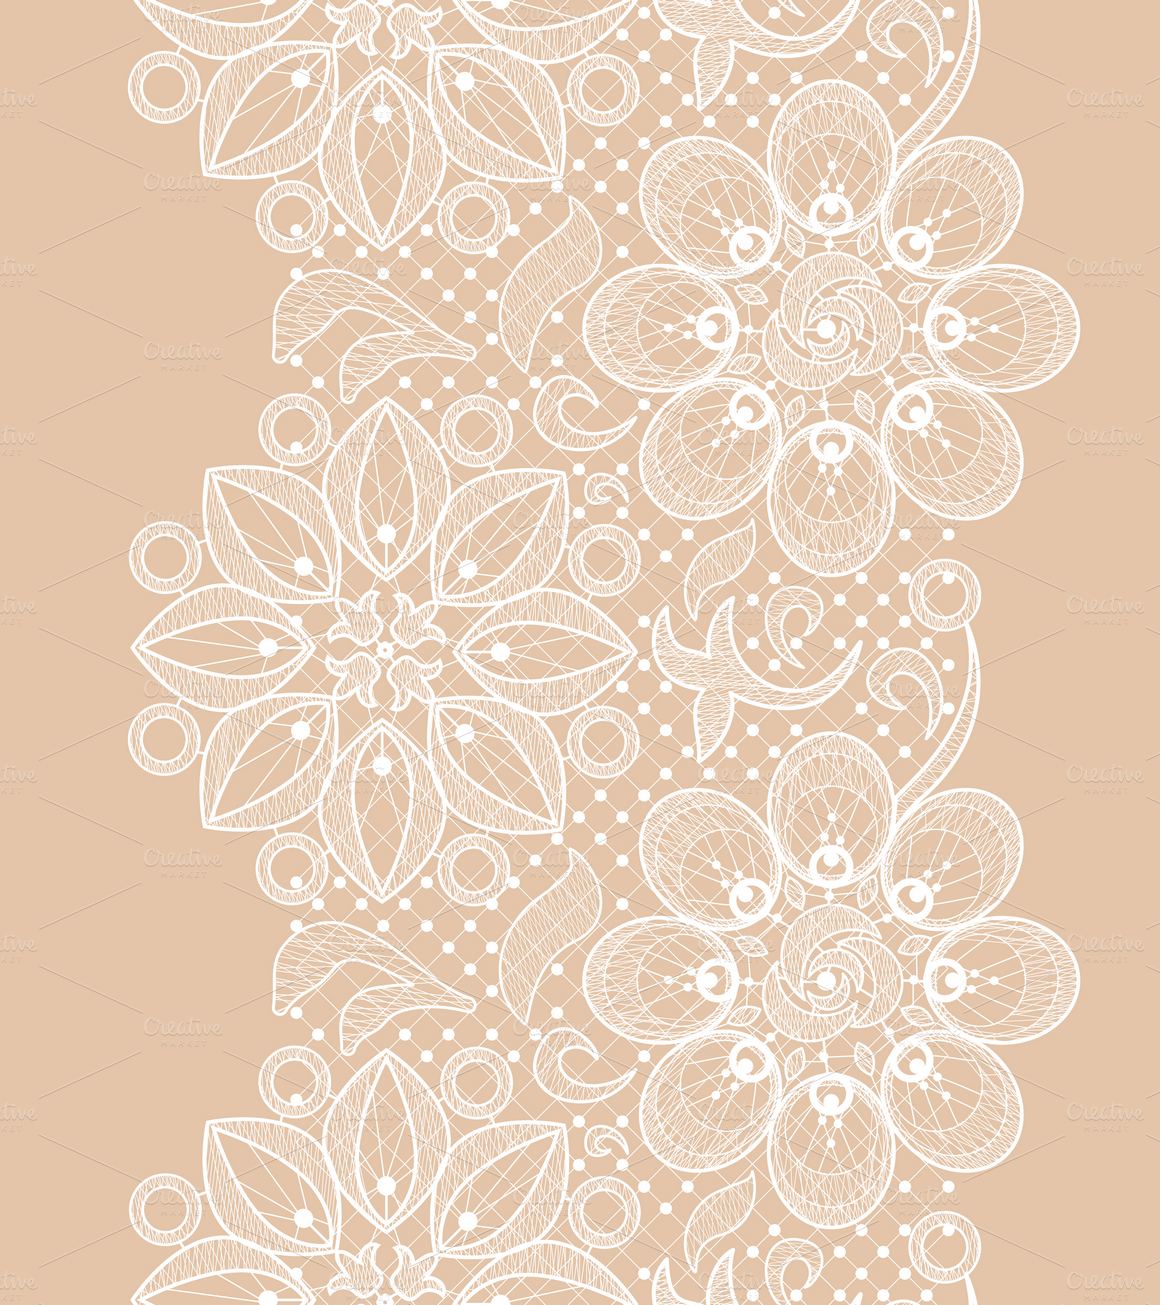 28 lace texture designs patterns backgrounds design for Images of design